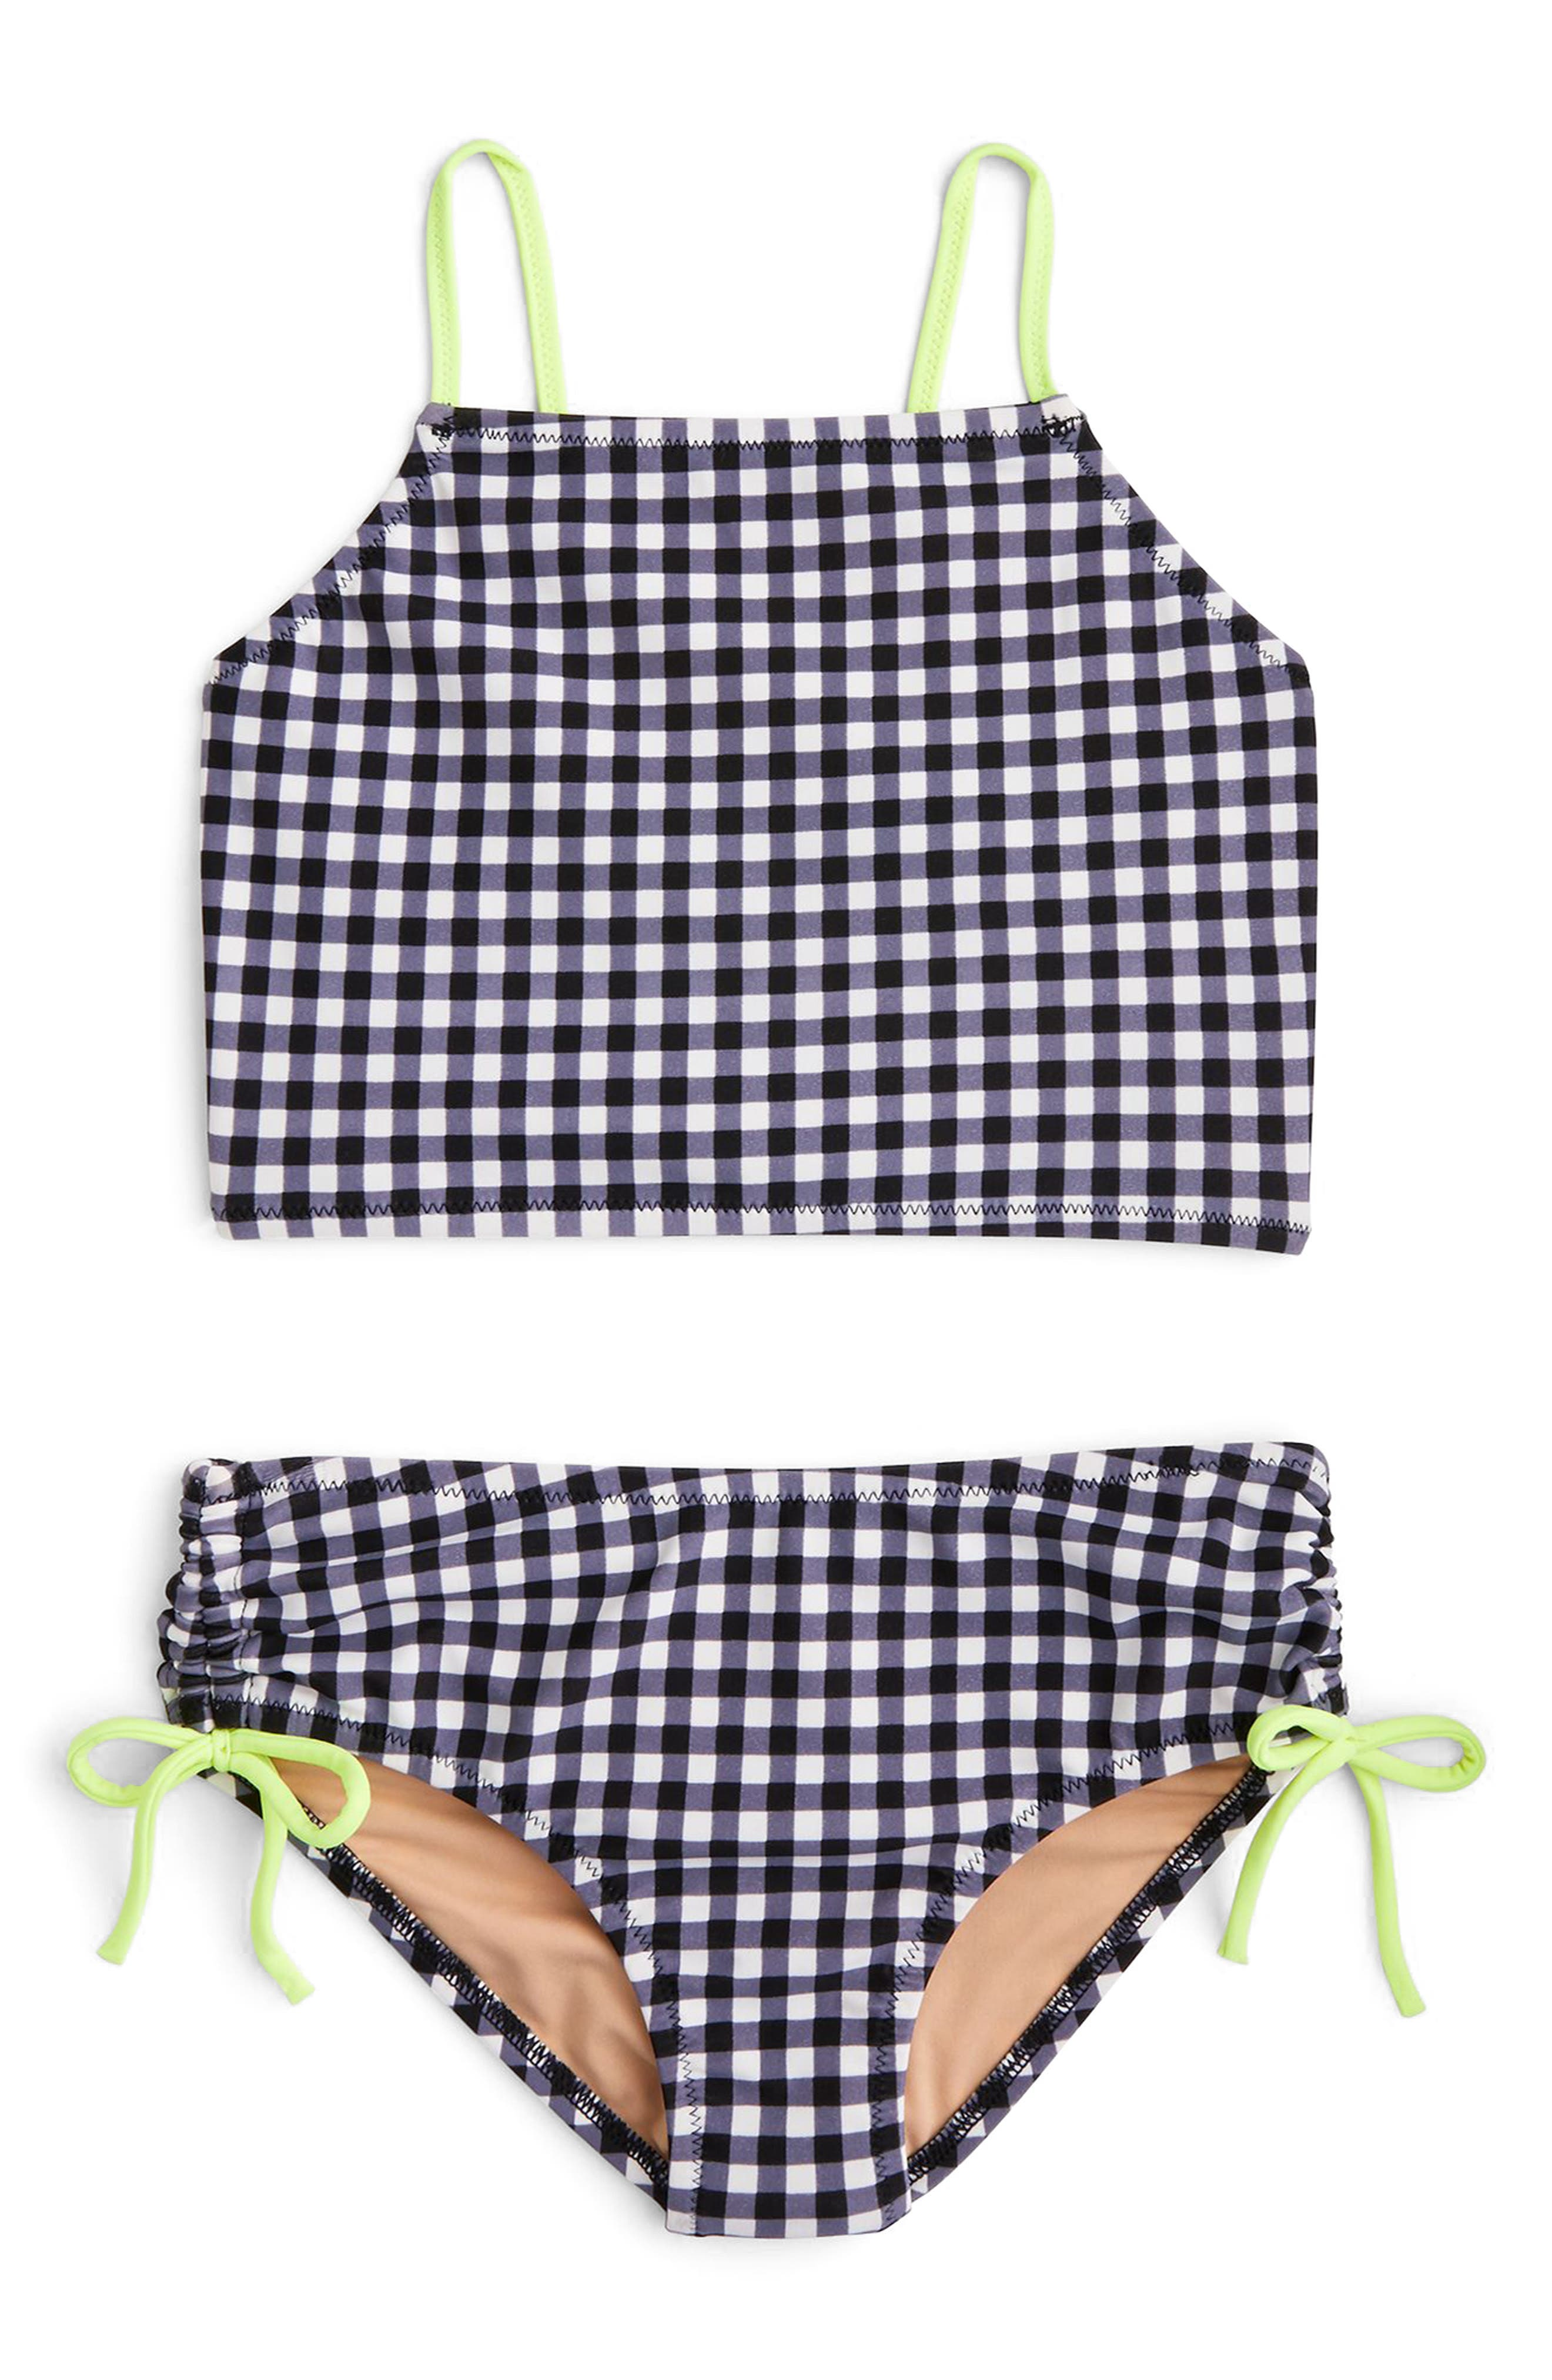 crewcuts by J. Crew Leia Gingham Two-Piece Swimsuit (Toddler Girls, Little Girls & Big Girls)